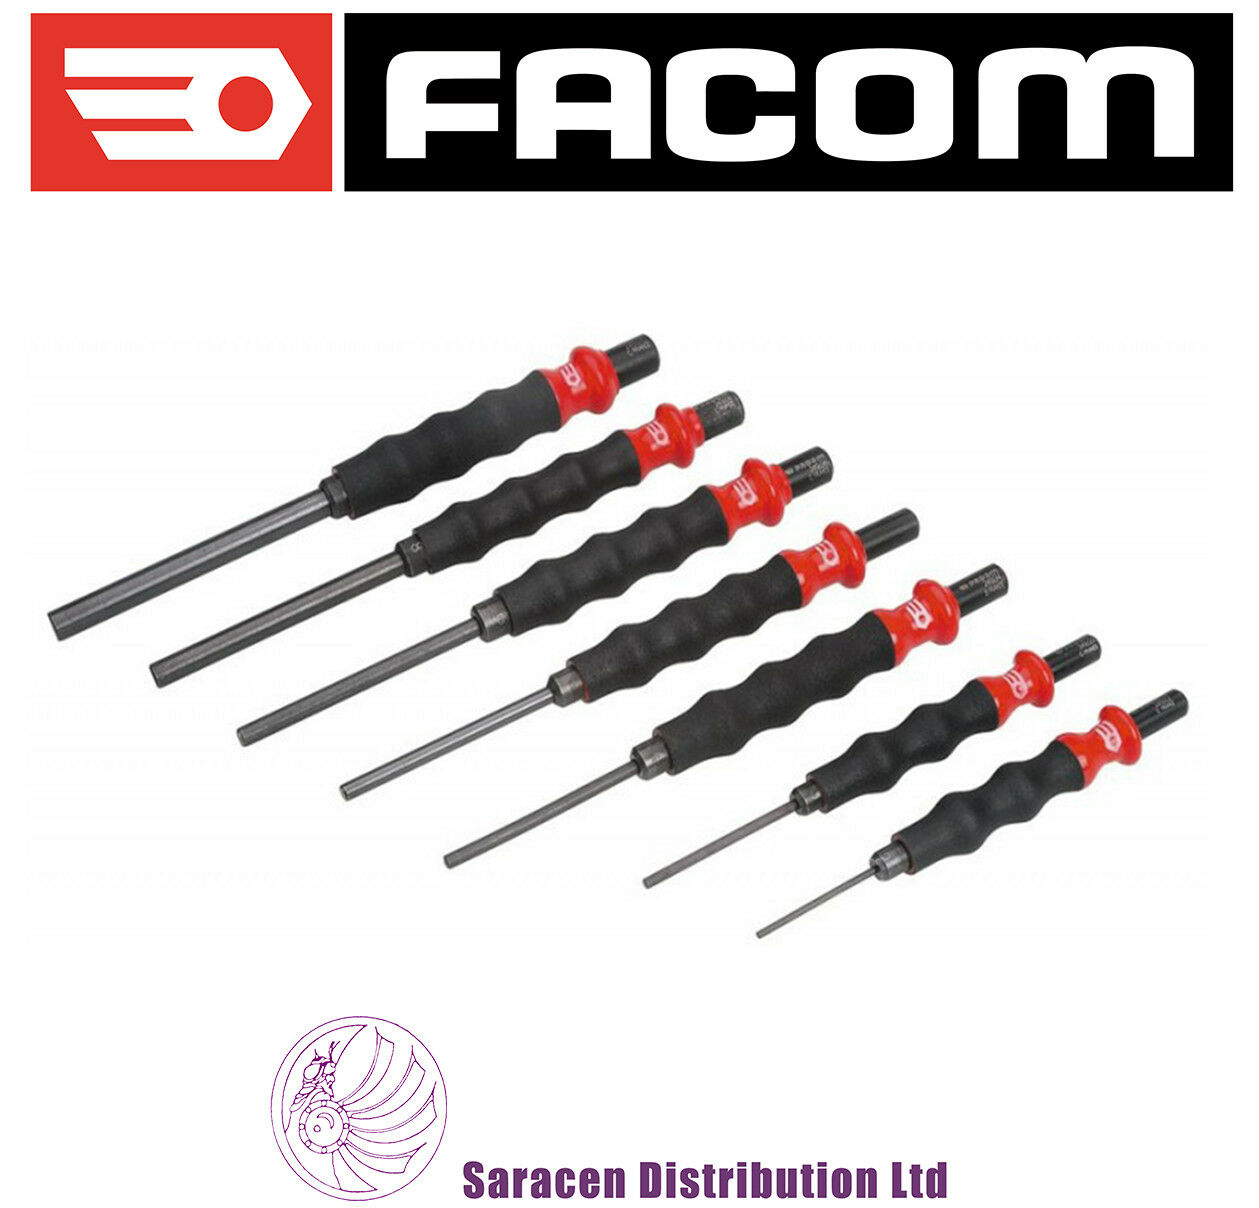 FACOM 7 PIECE SHEATHED DRIFT PUNCH SET, 2 - 10MM, COMFORT GRIP - 249.GJ7